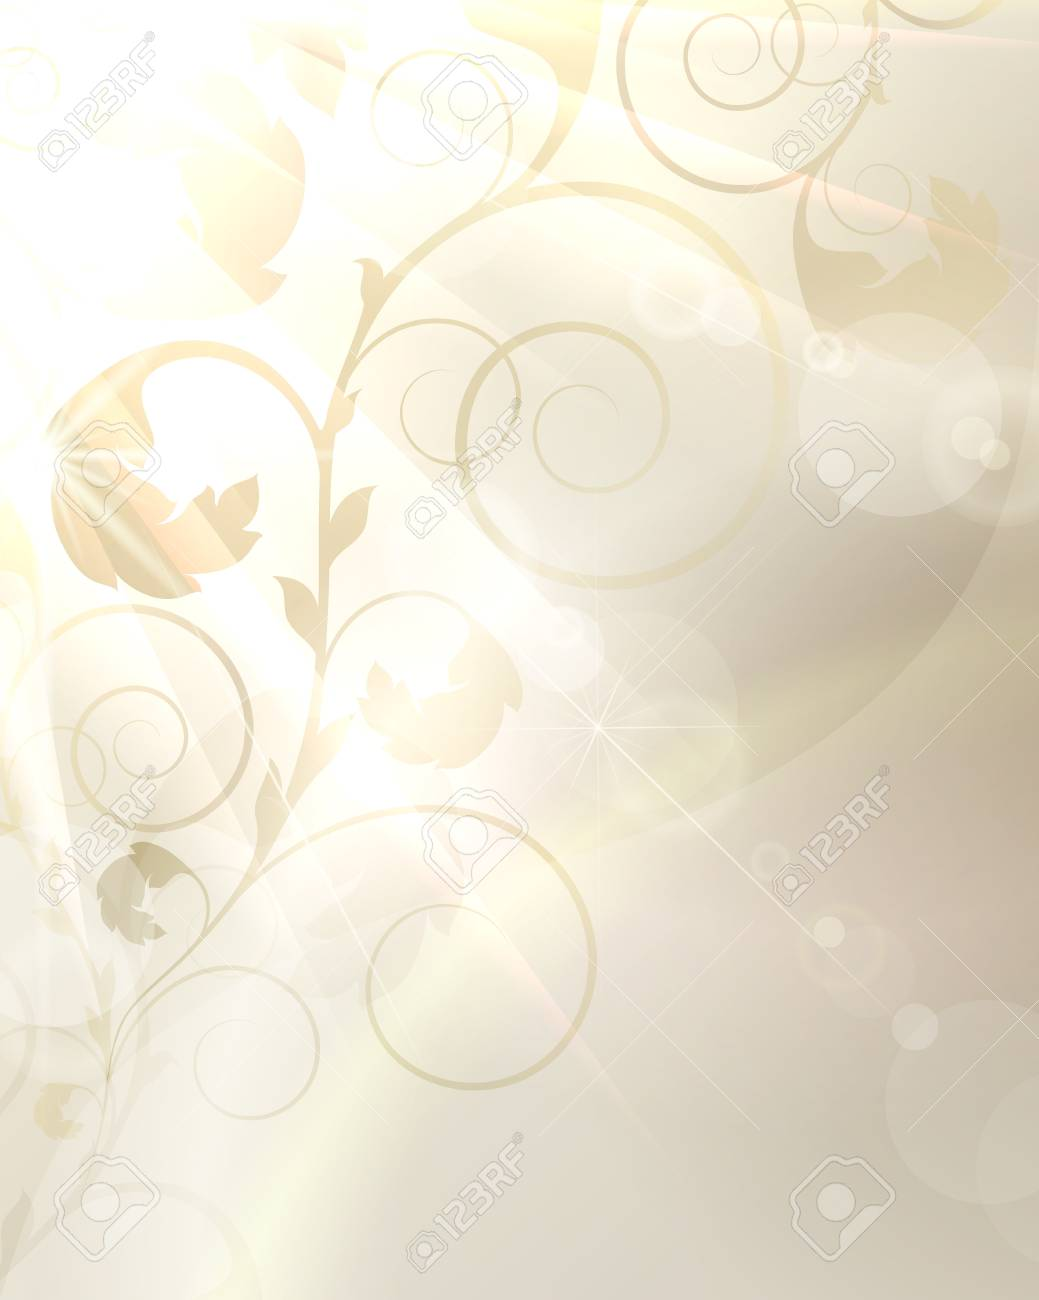 Sunny vector background - 11432796